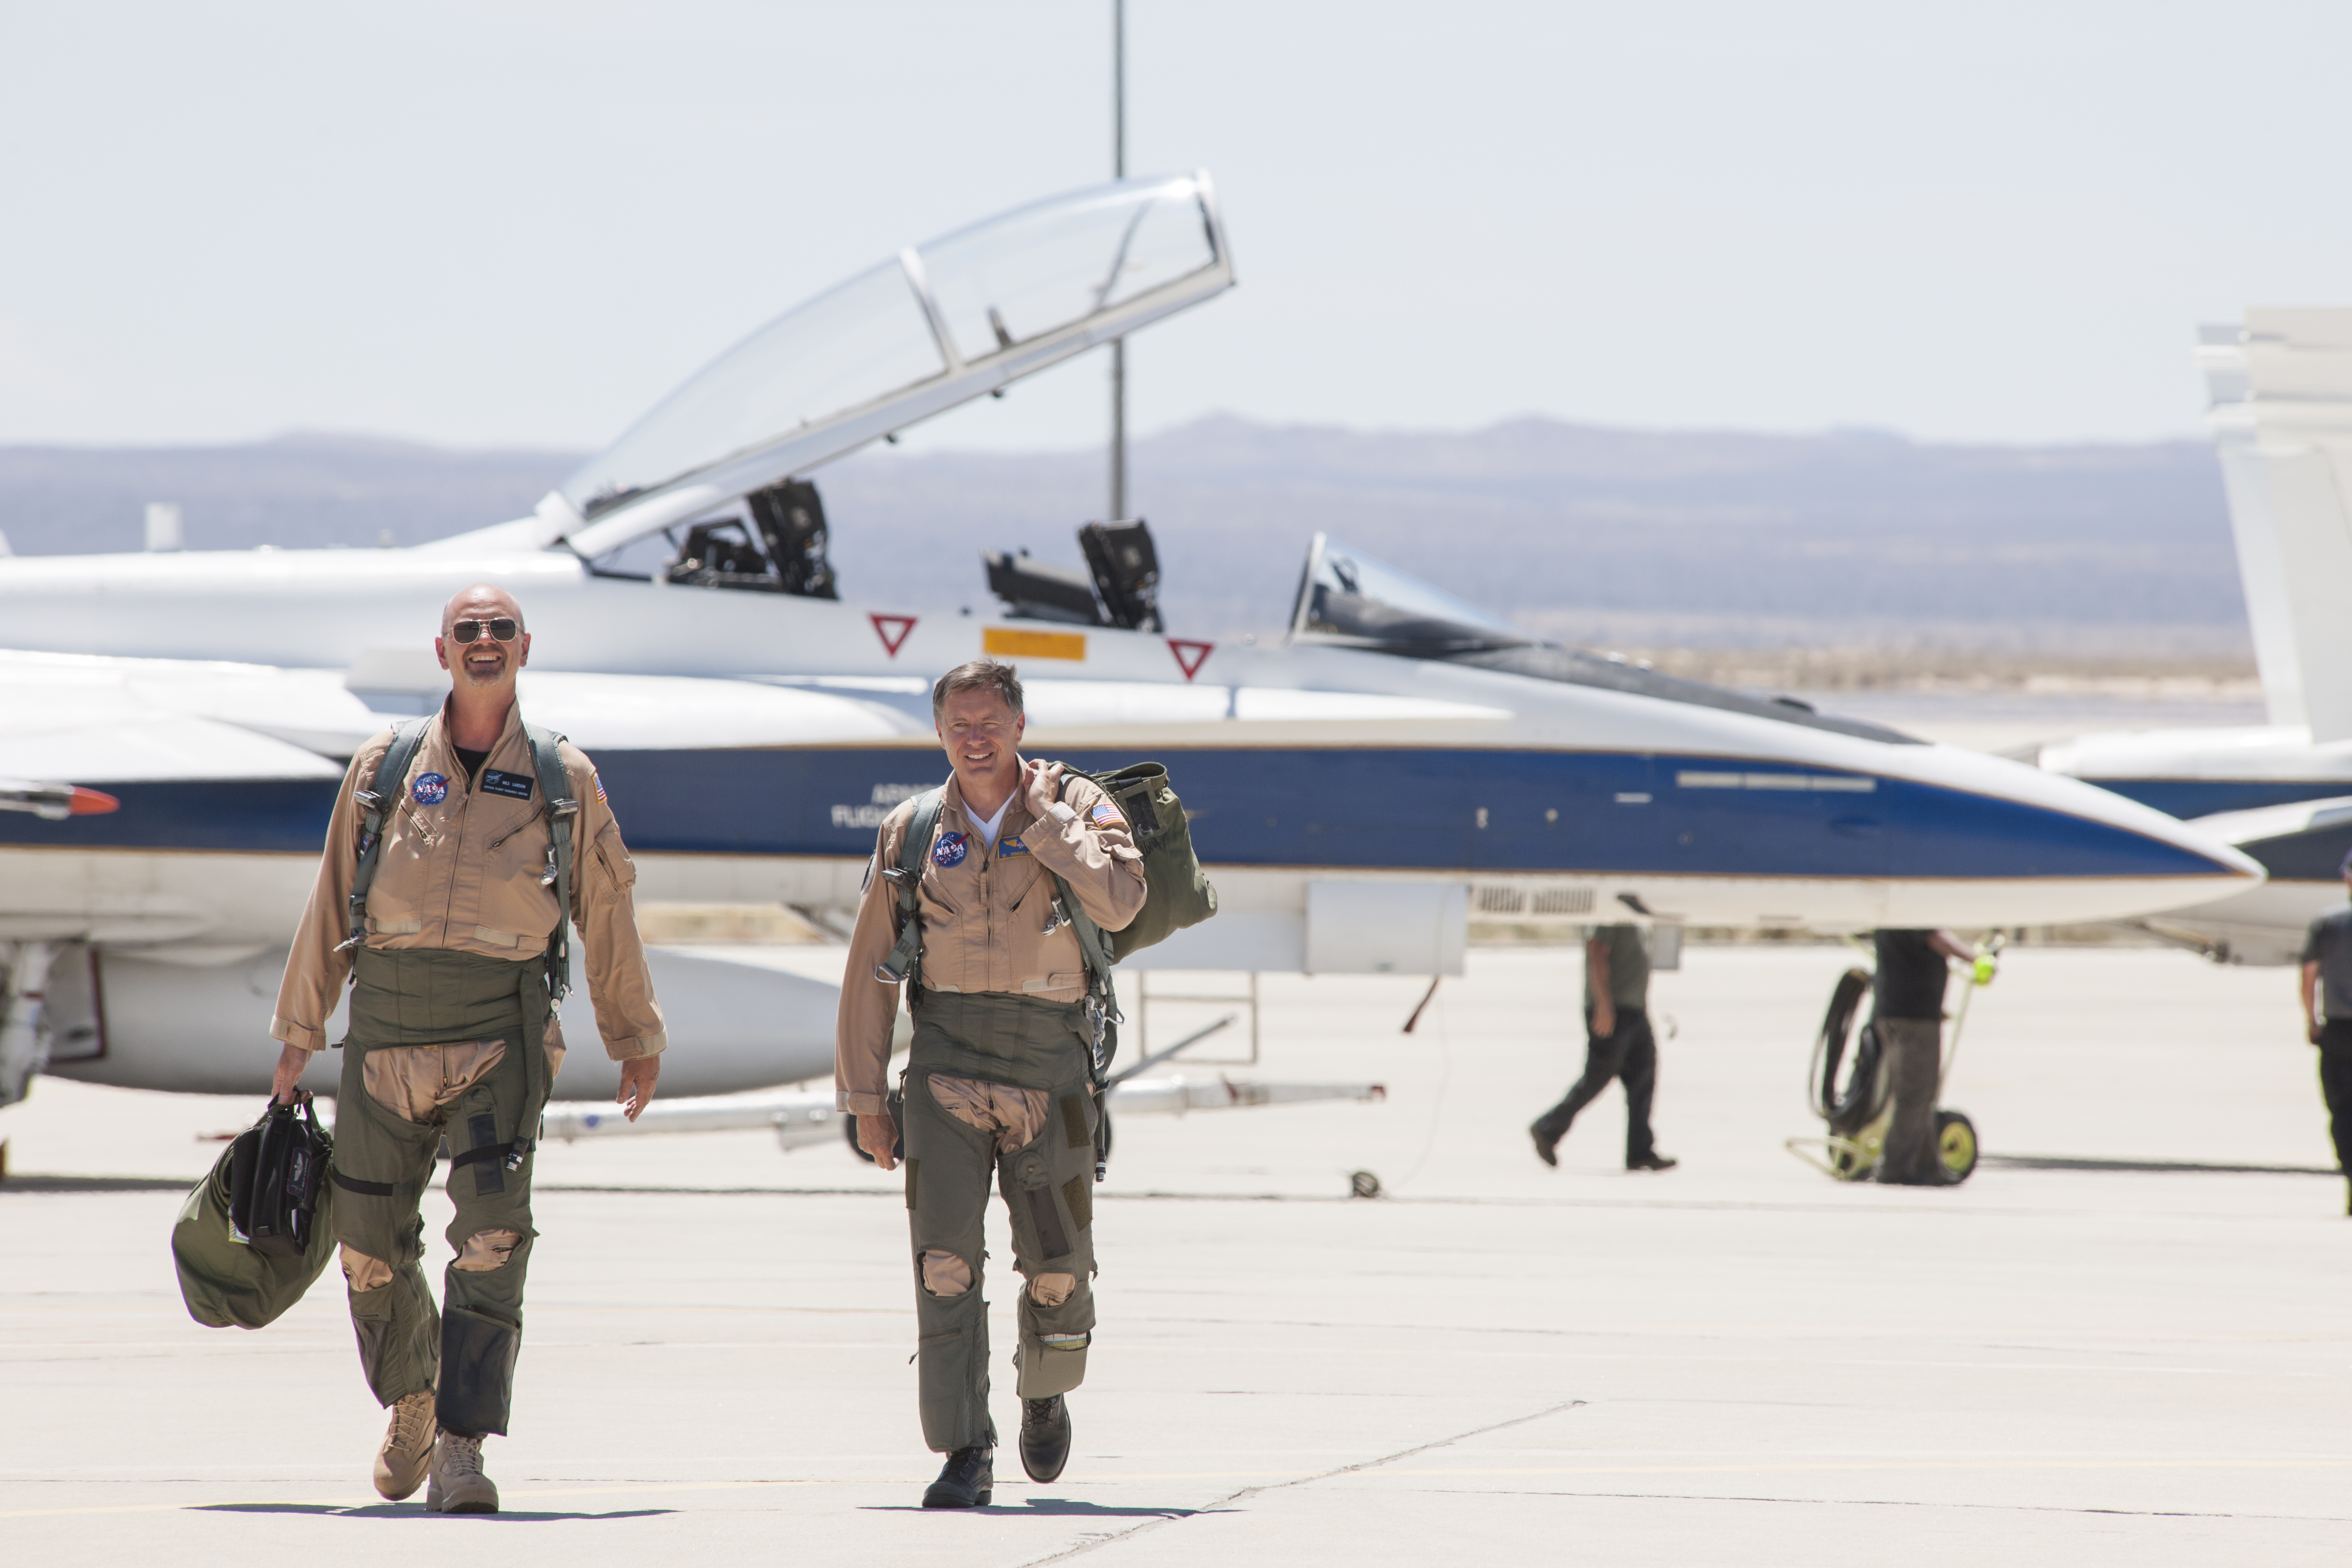 NASA F-18 chase plane tests ways to soften sonic booms ...